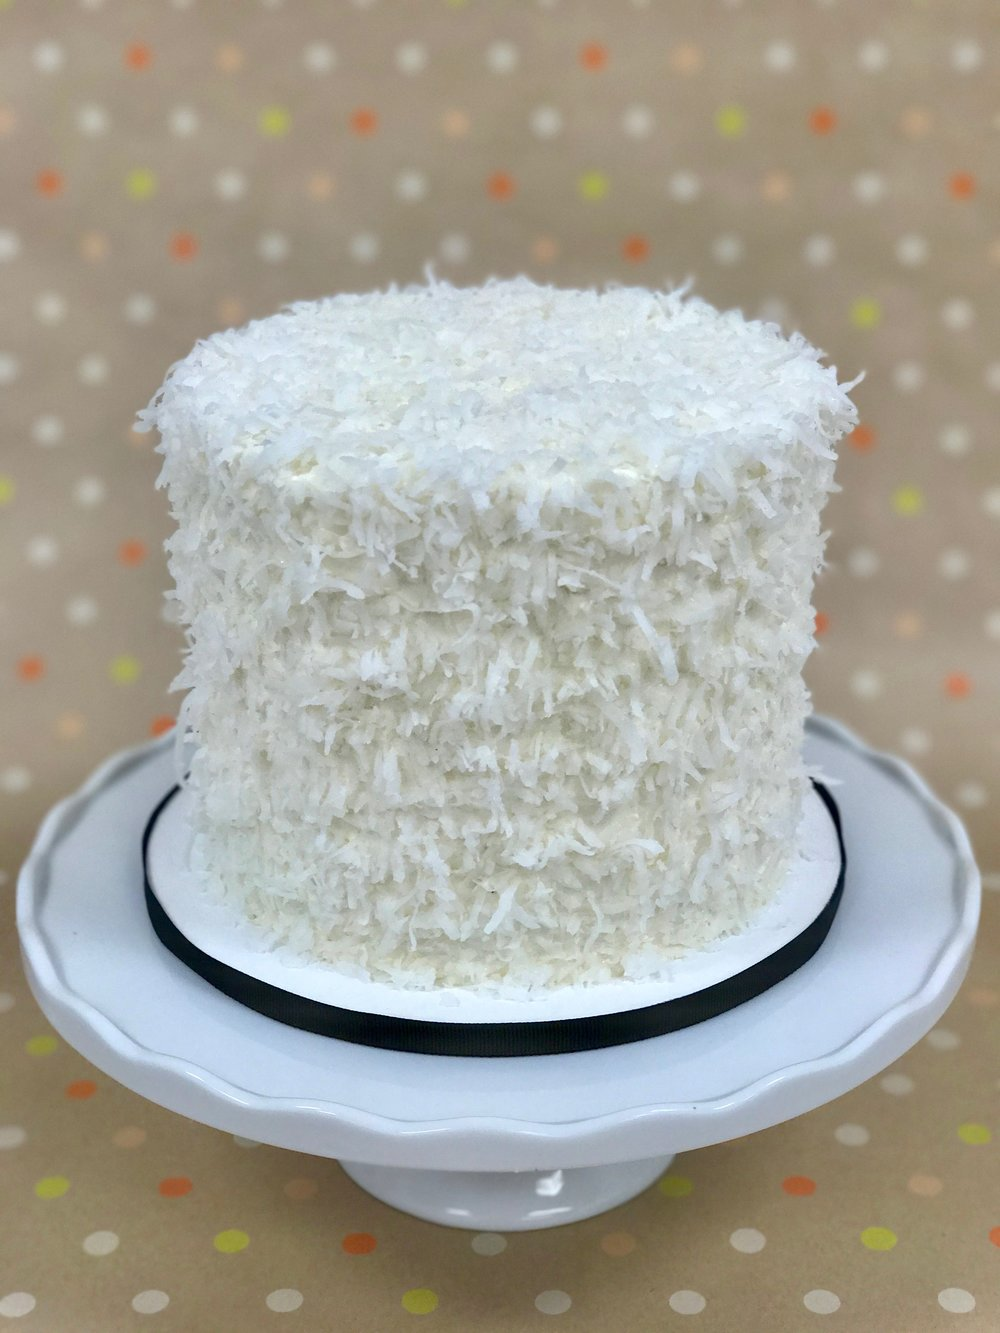 Coconut - Cake: CoconutFilling: Vanilla Cream CheeseFrosting: Vanilla Swiss Meringue Buttercream and Shredded Coconut